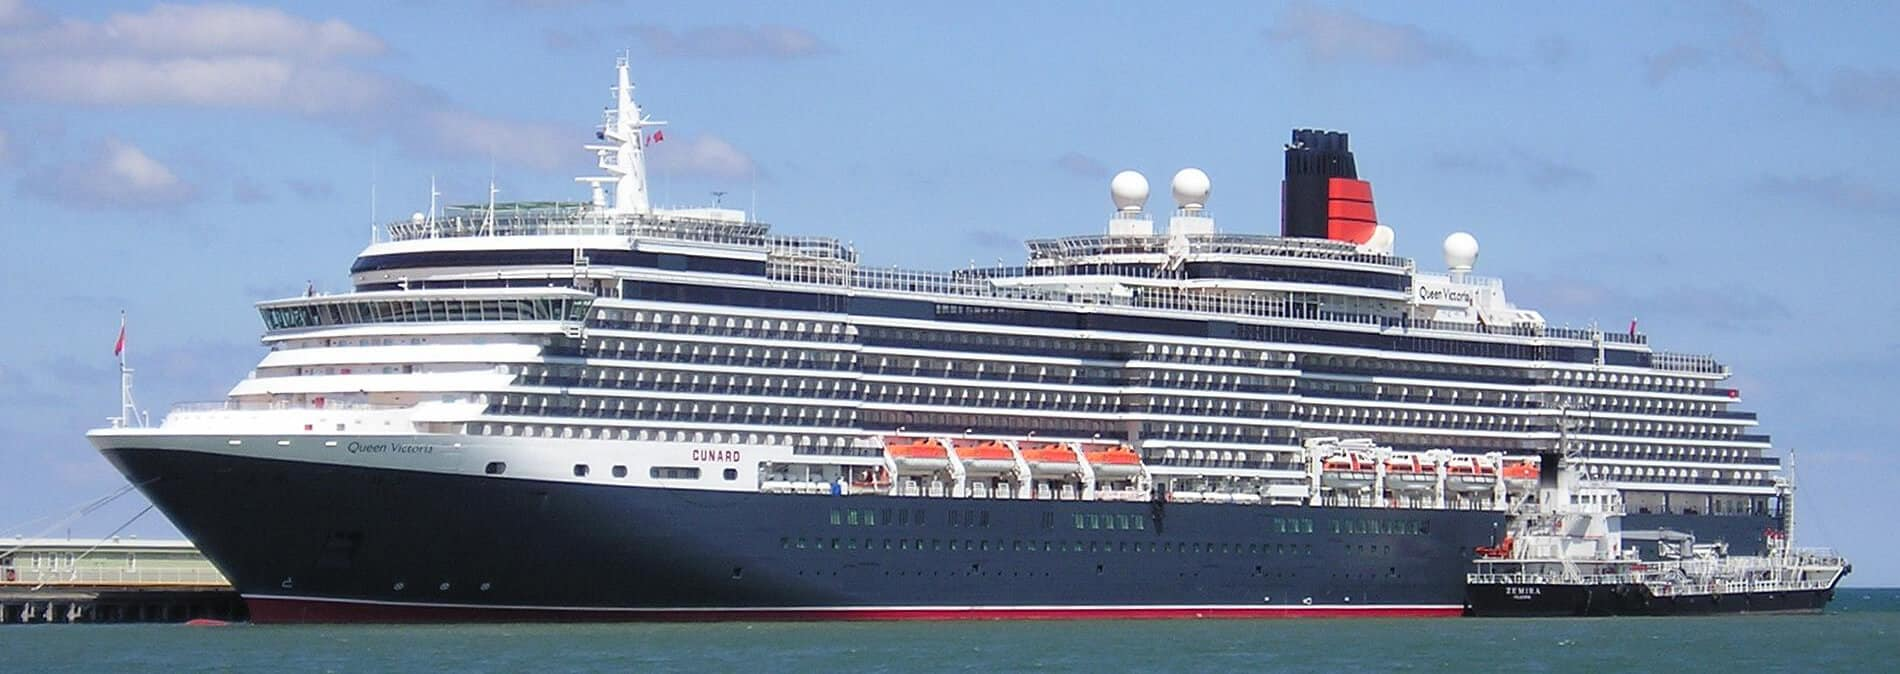 Cruise Liner Ship financing...No ship is too large to finance for ship construction loans